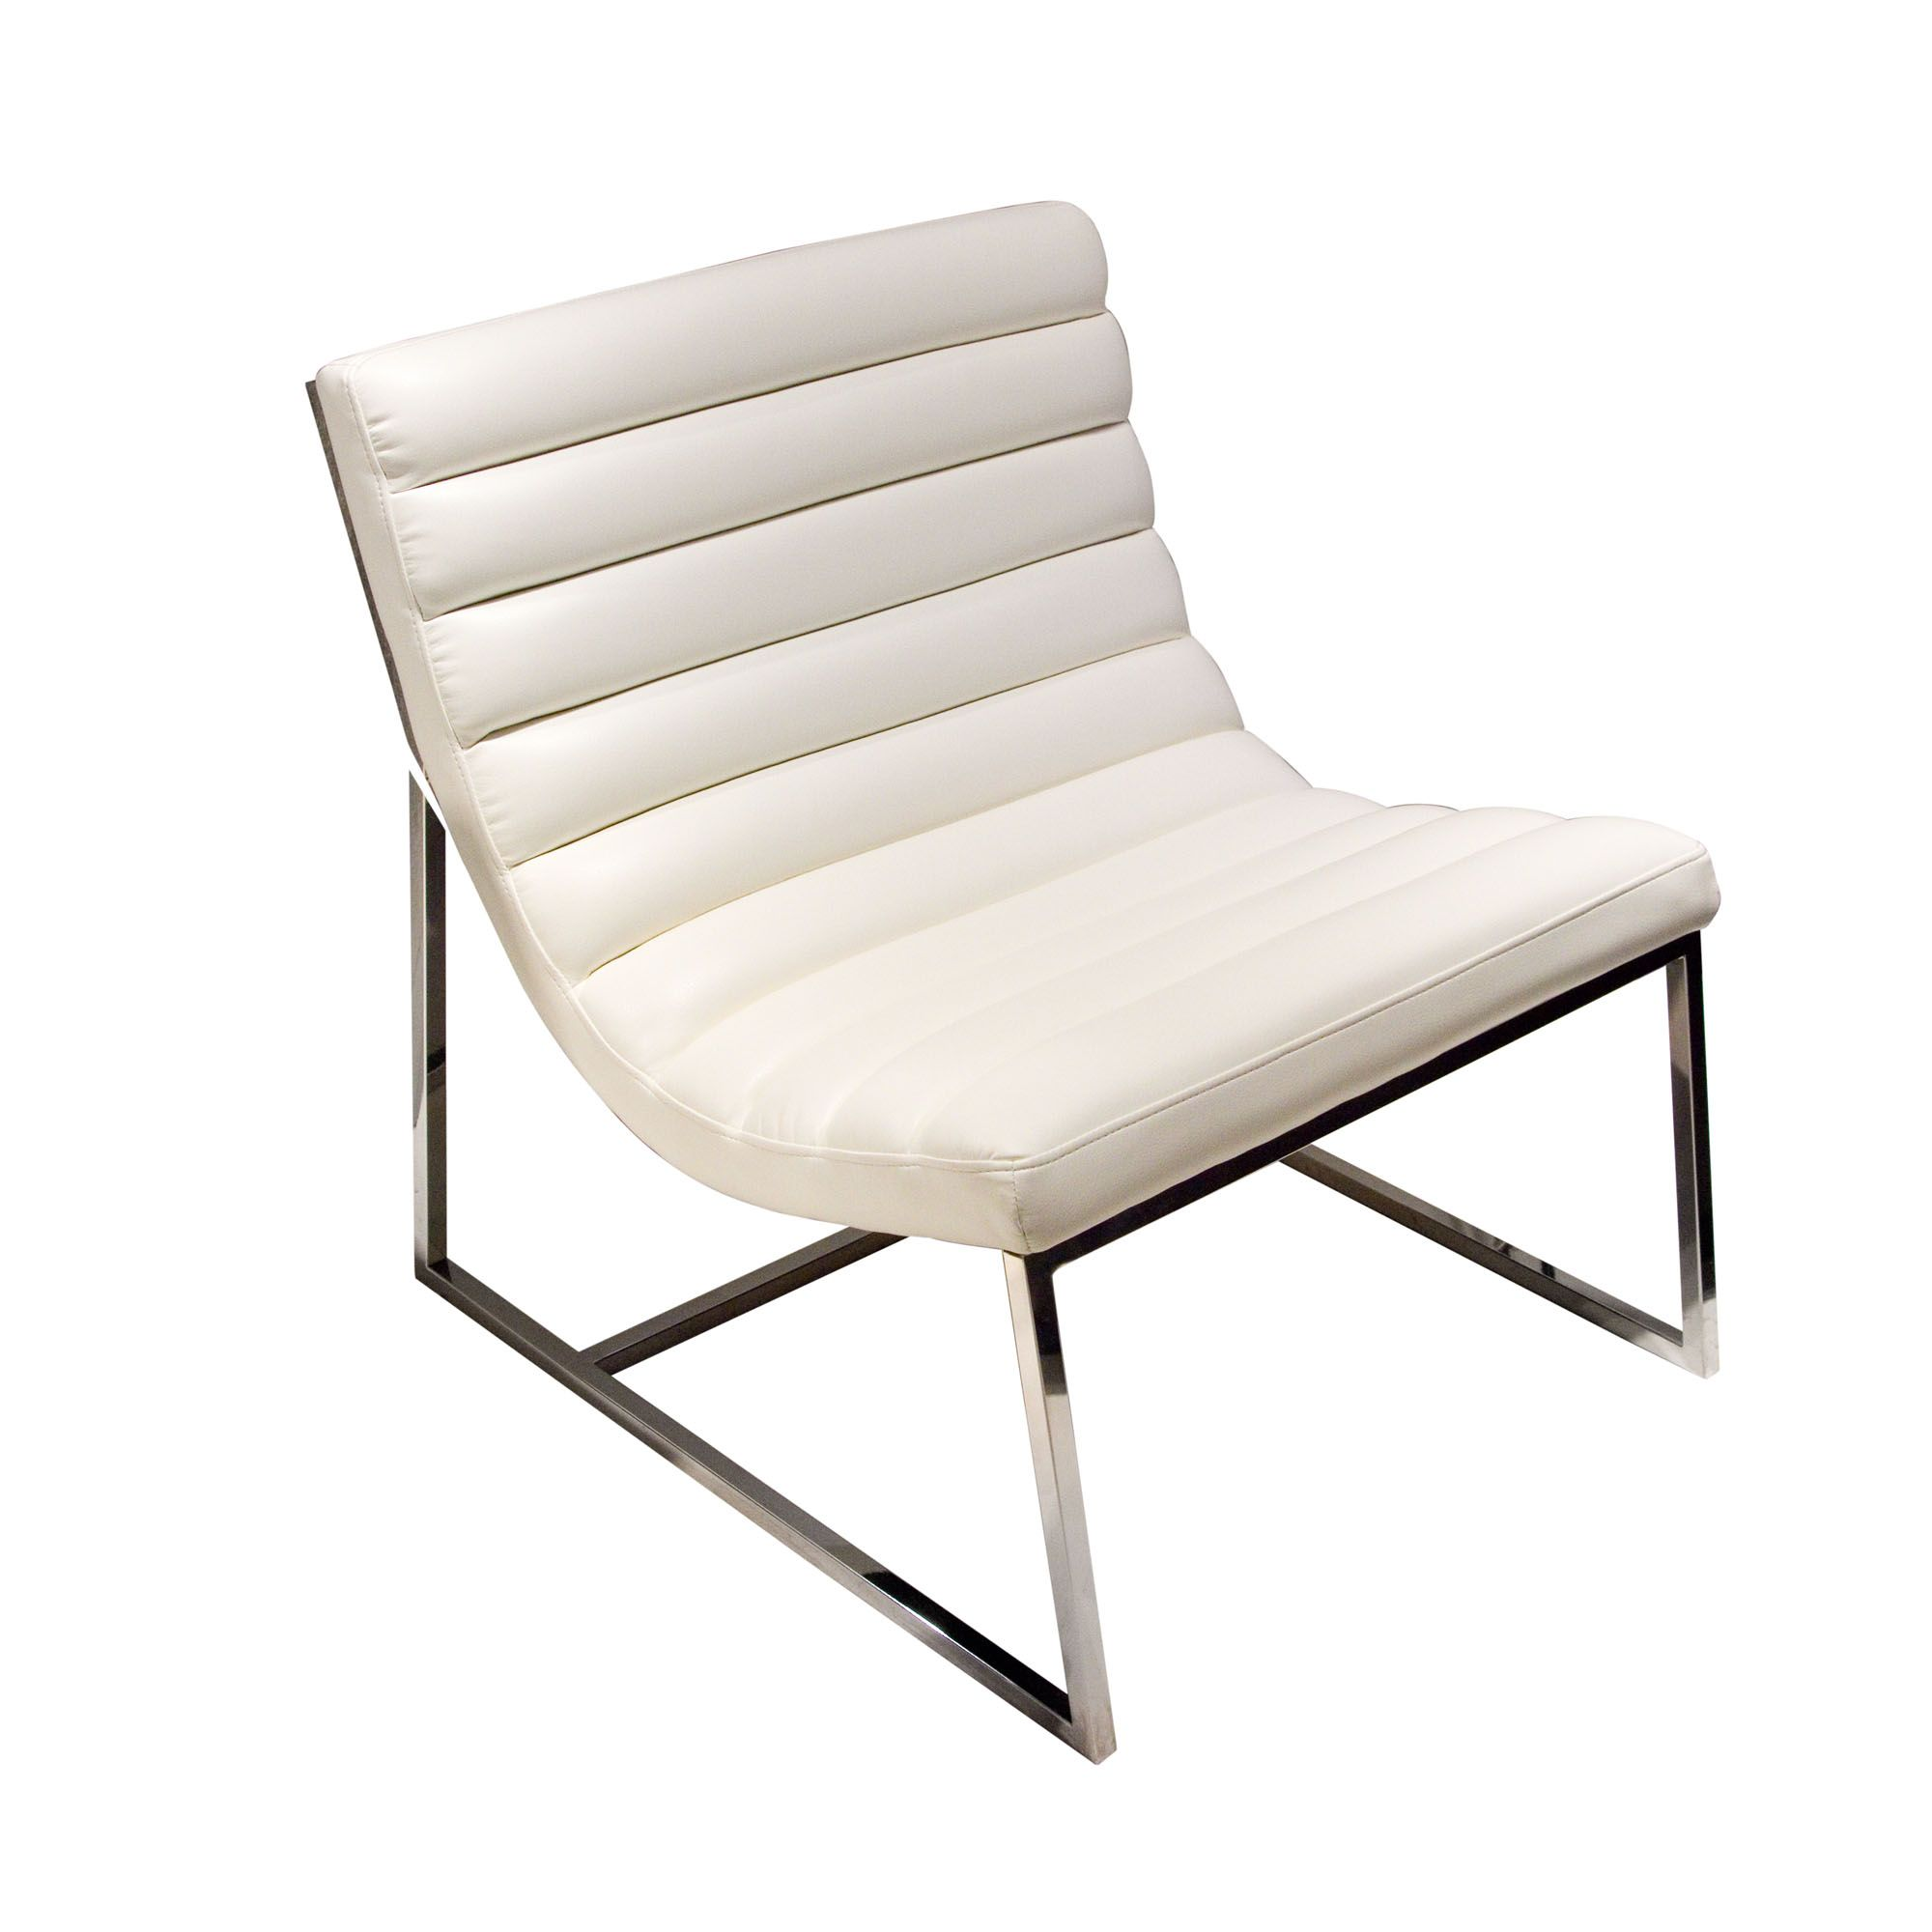 Lounge Sessel Indoor Hängende Lounge Sessel White Lounge Indoor Lounge Chair Antik